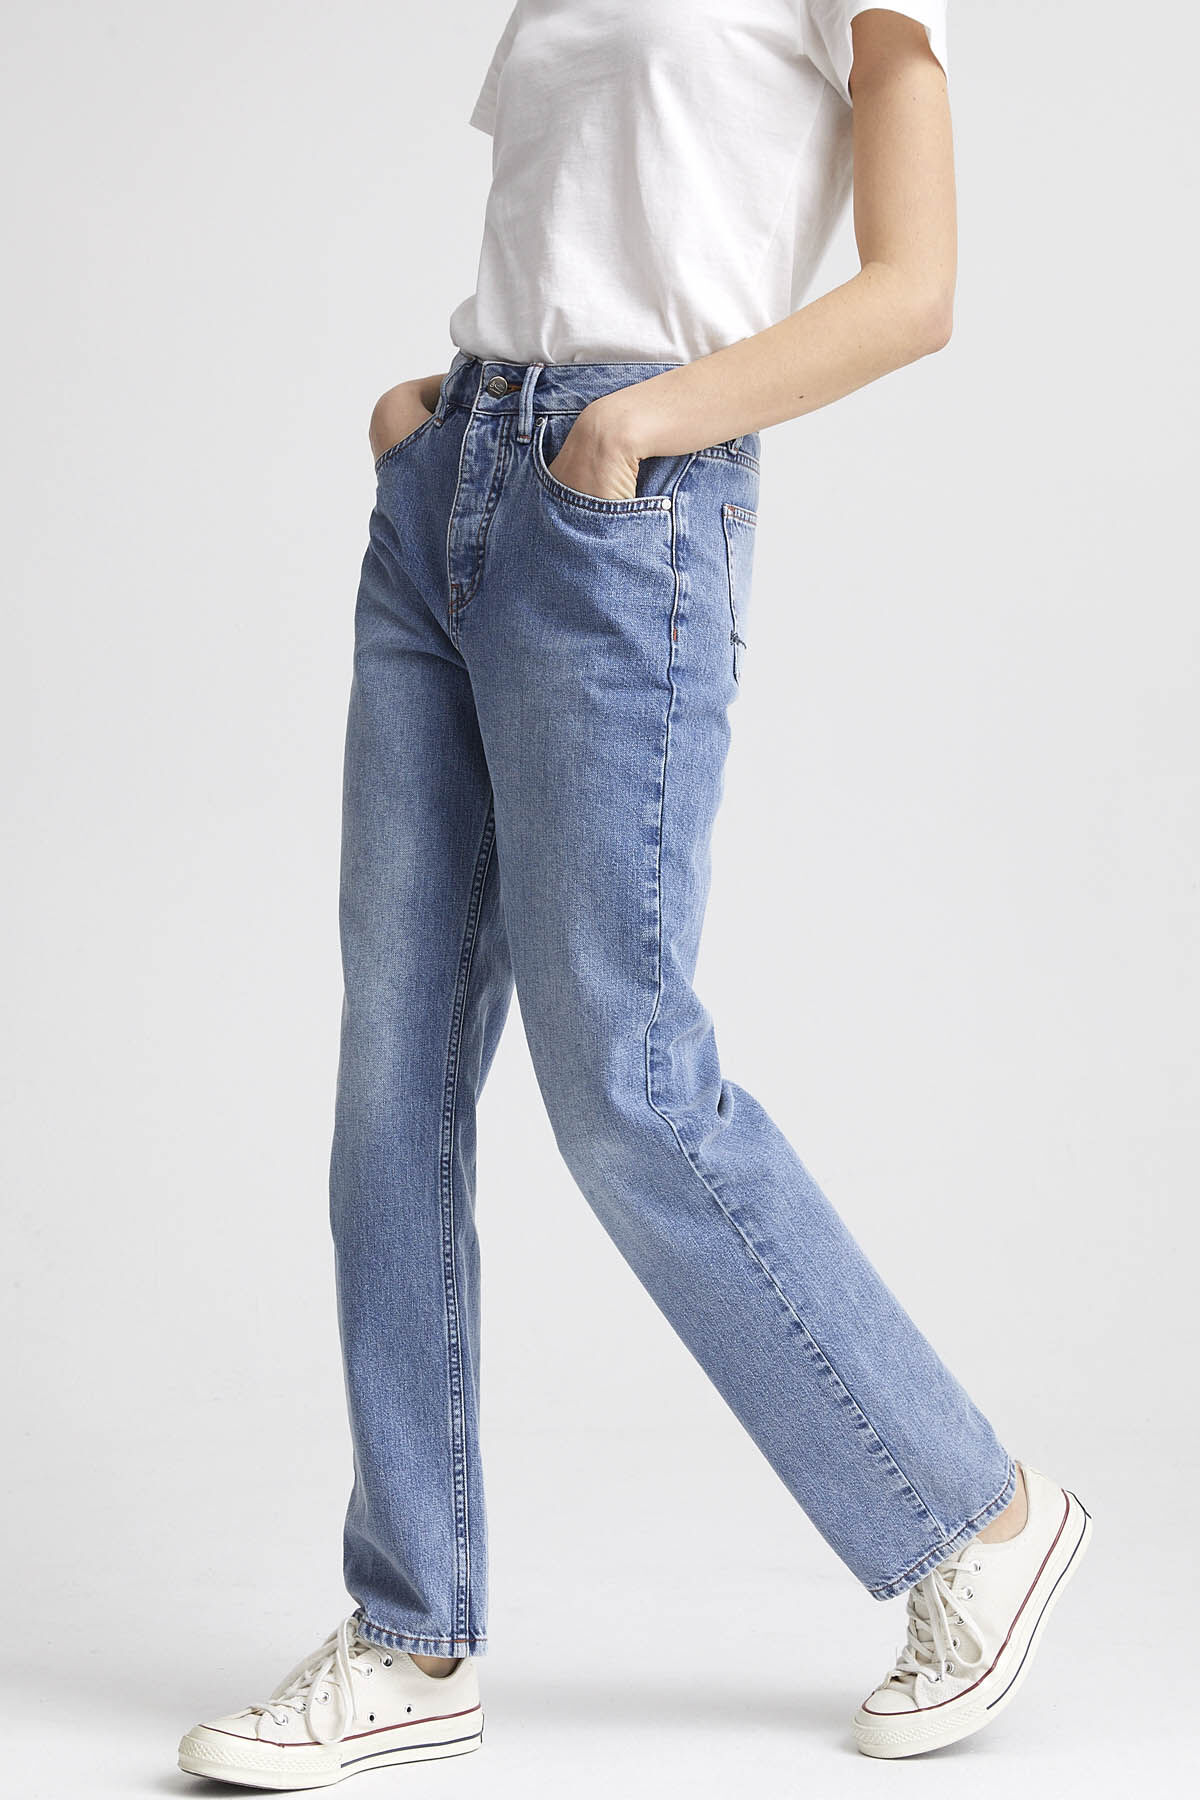 HALE JEAN Vintage Indigo Denim - High-rise Straight Fit